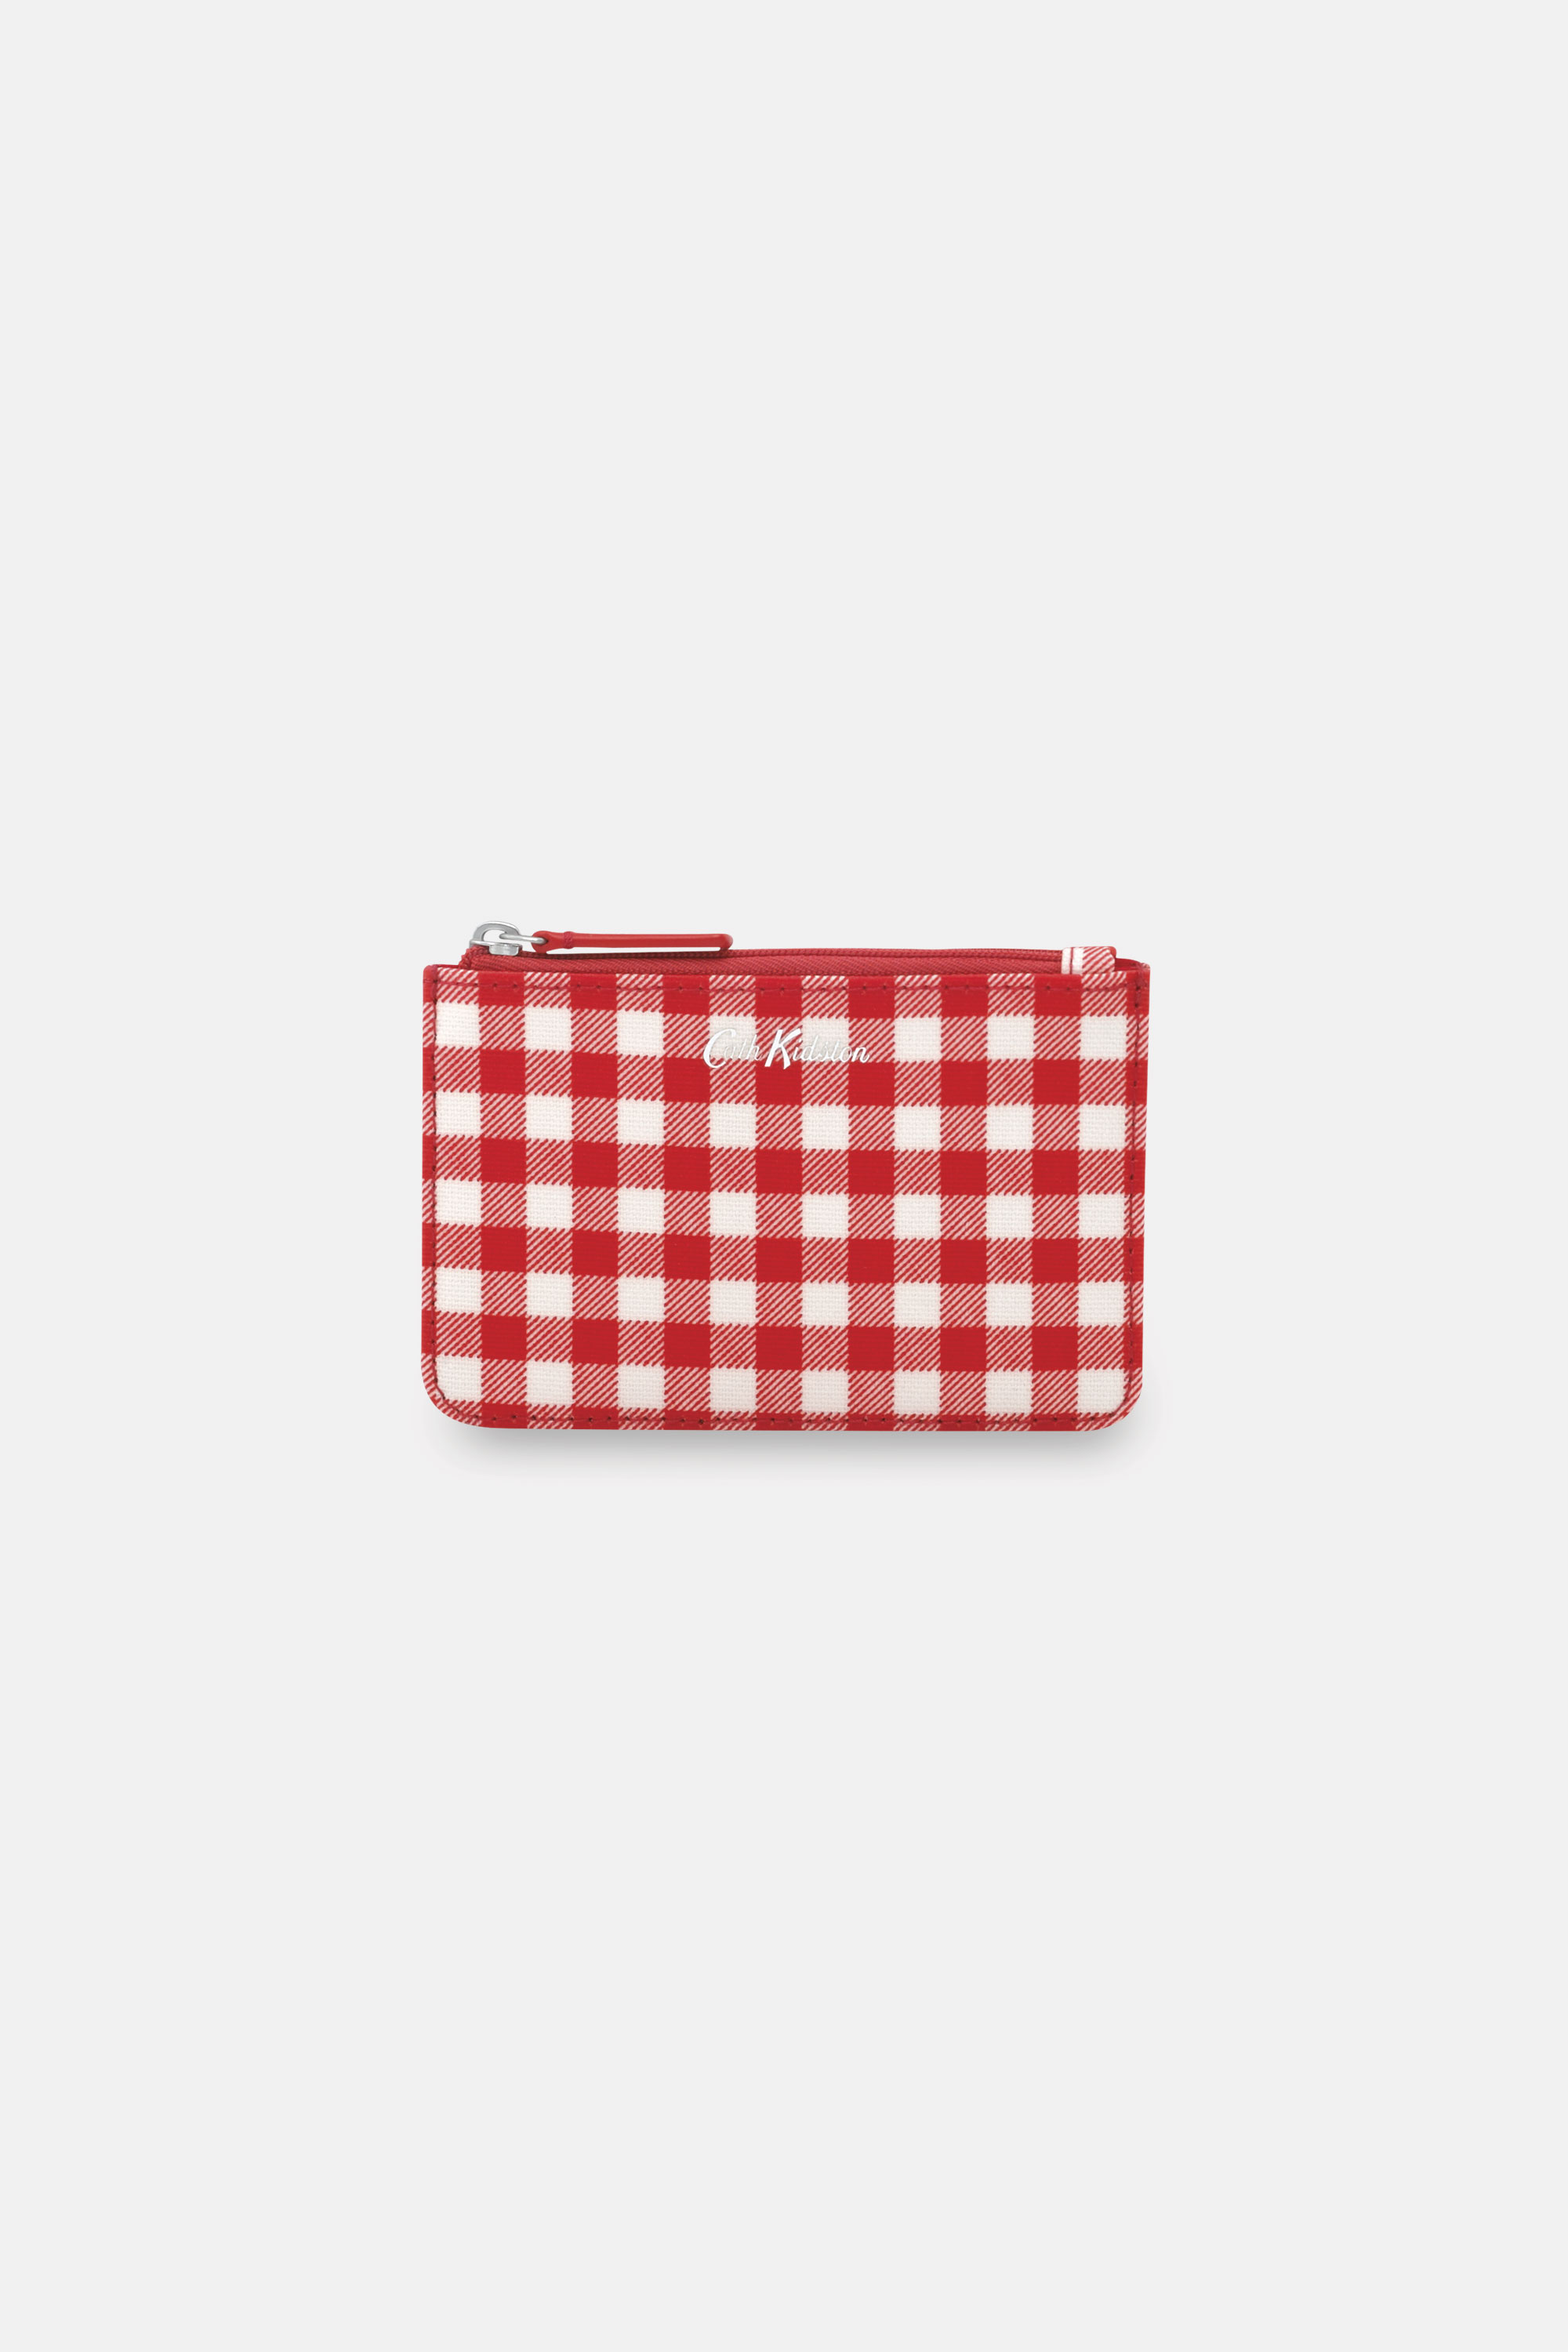 Cath Kidston Gingham Small Cash and Card Purse in Warm Cream